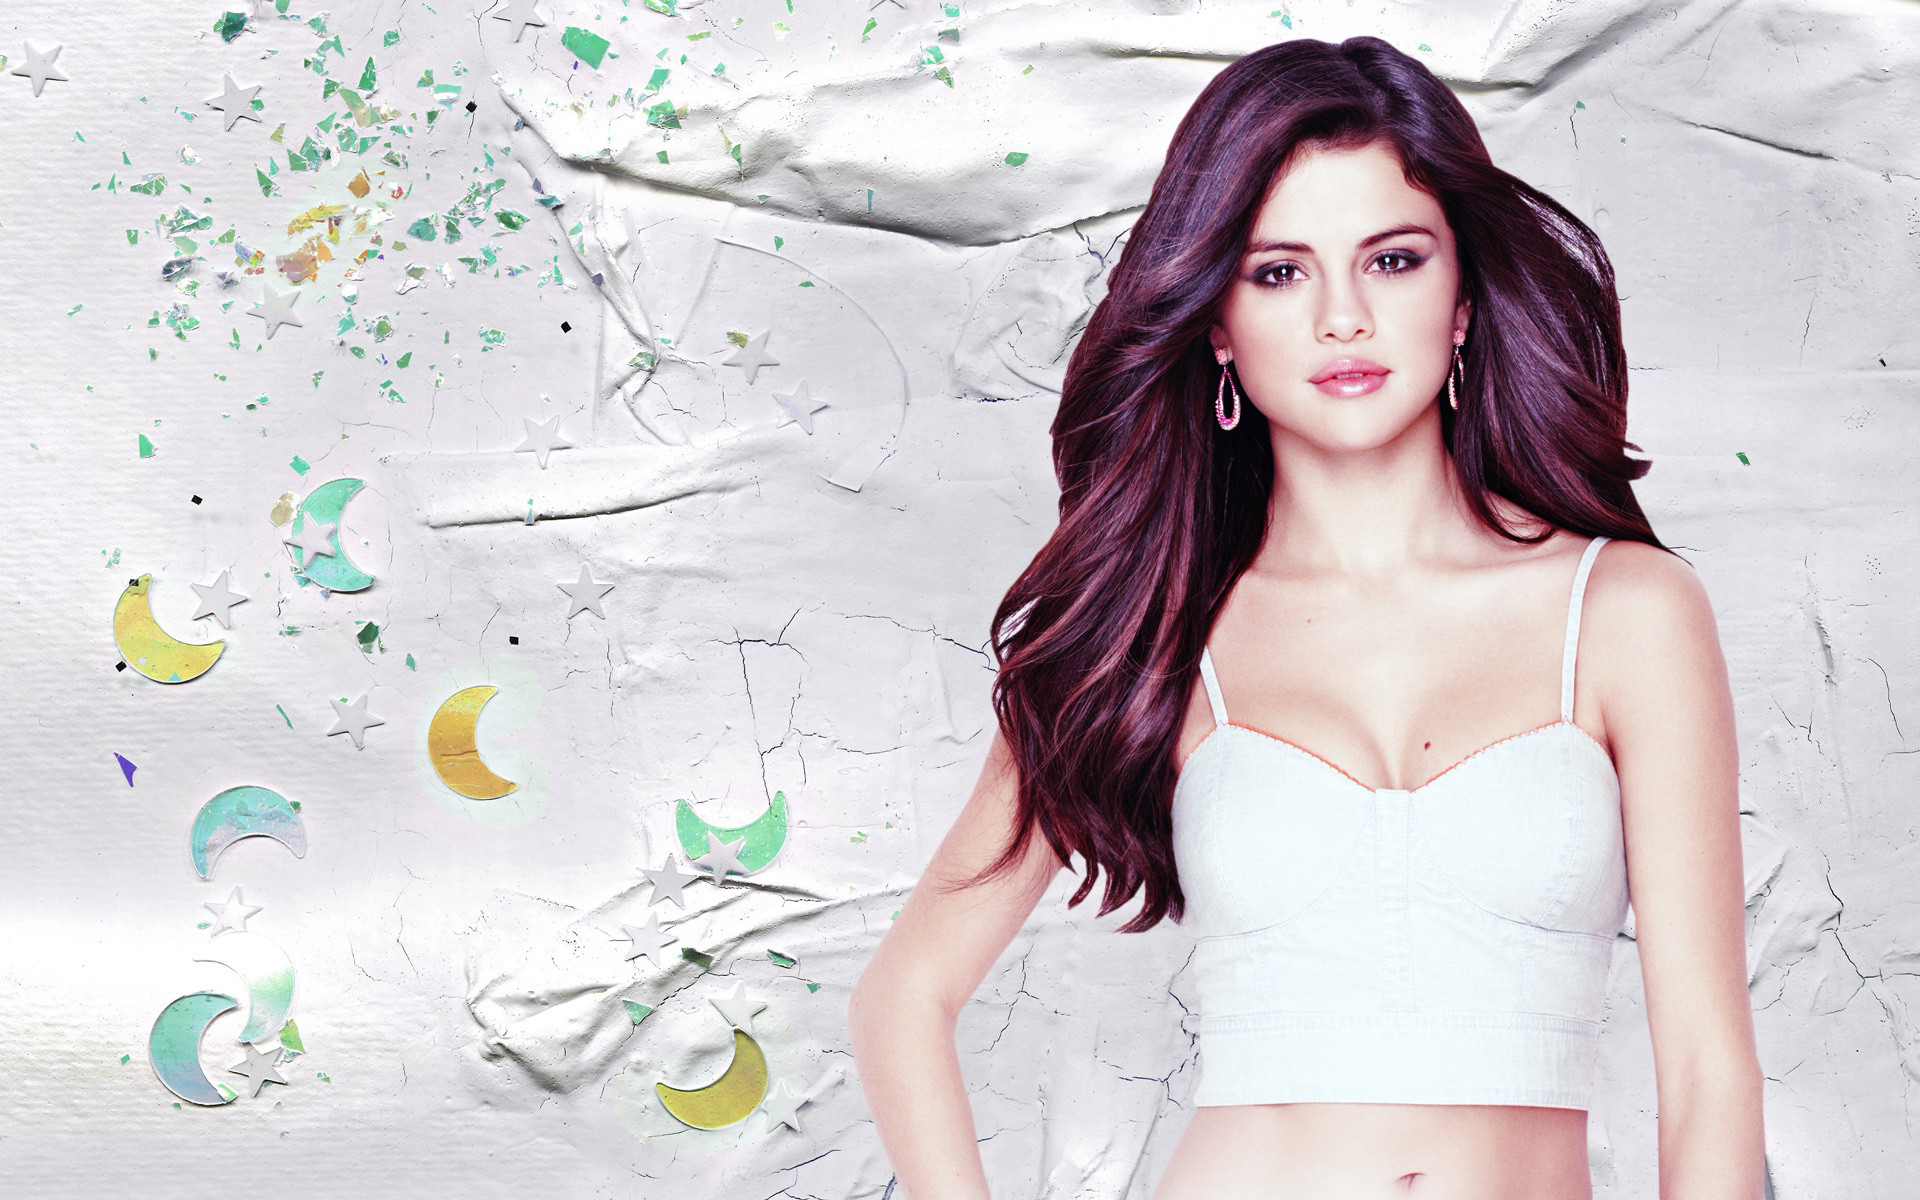 1920x1200 Selena Gomez Wallpapers: 12 HD -05 - Full Size